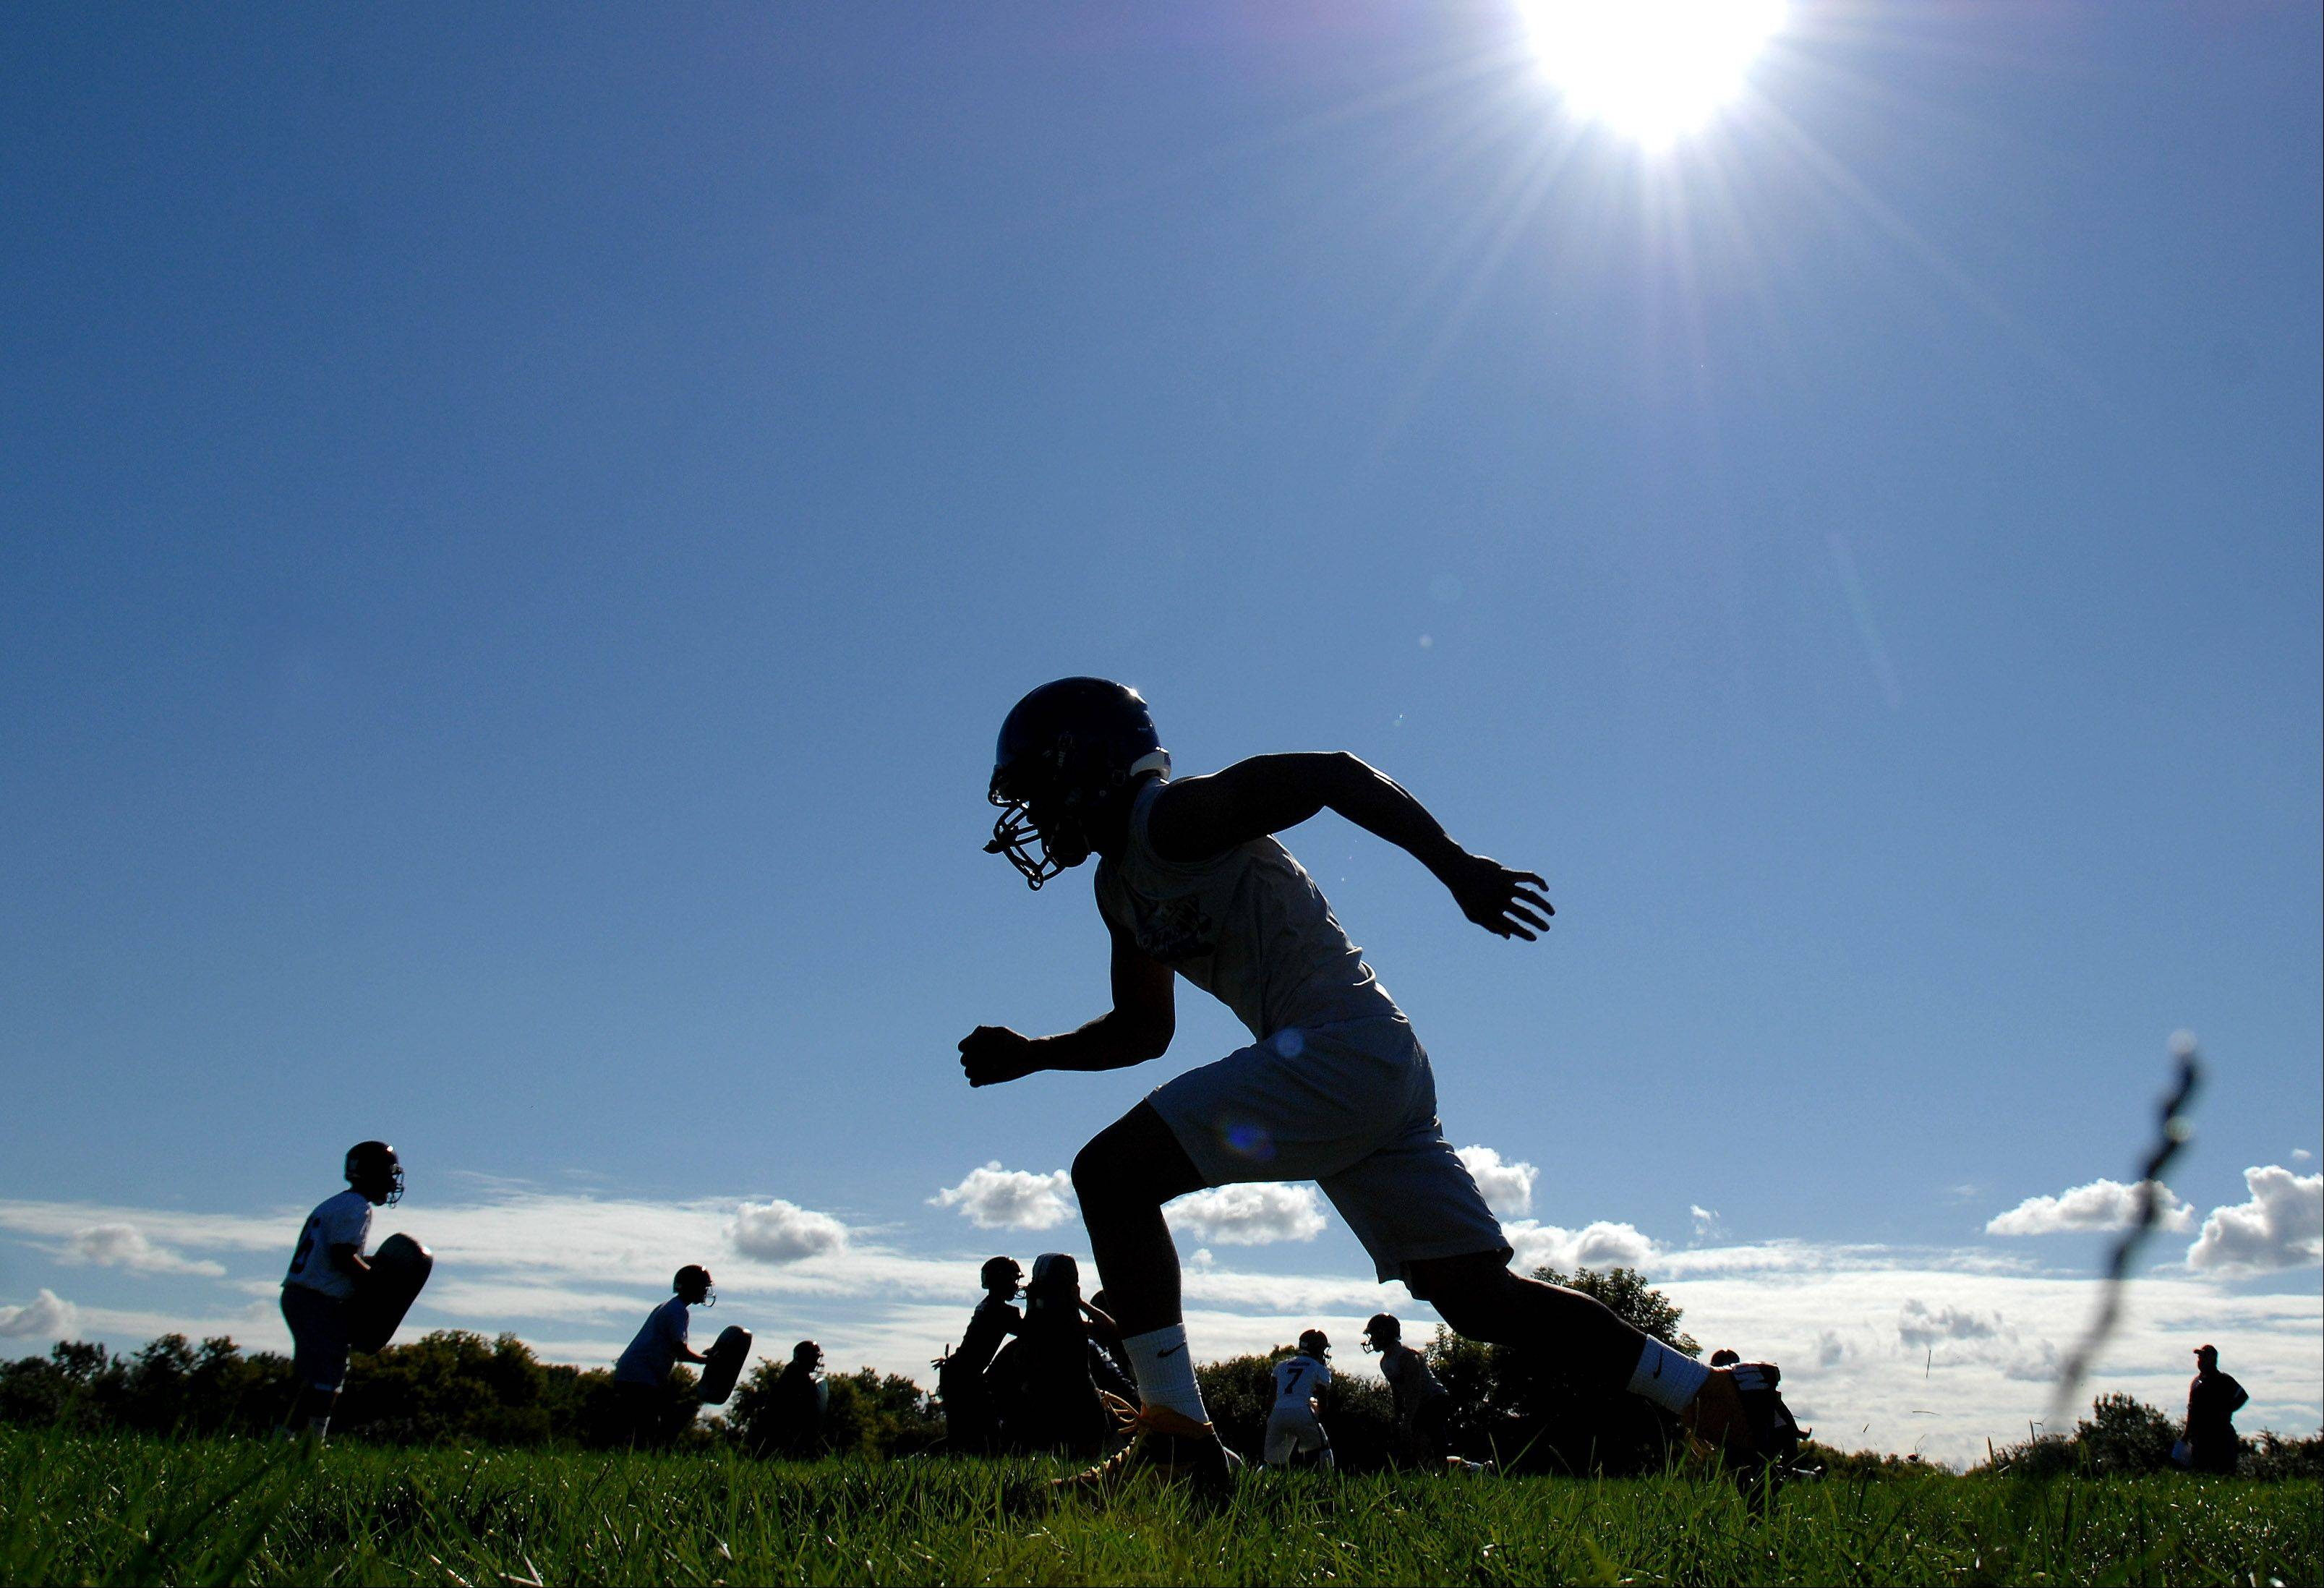 The offense runs through plays during the first day of fall football practice at Bartlett High School Wednesday.